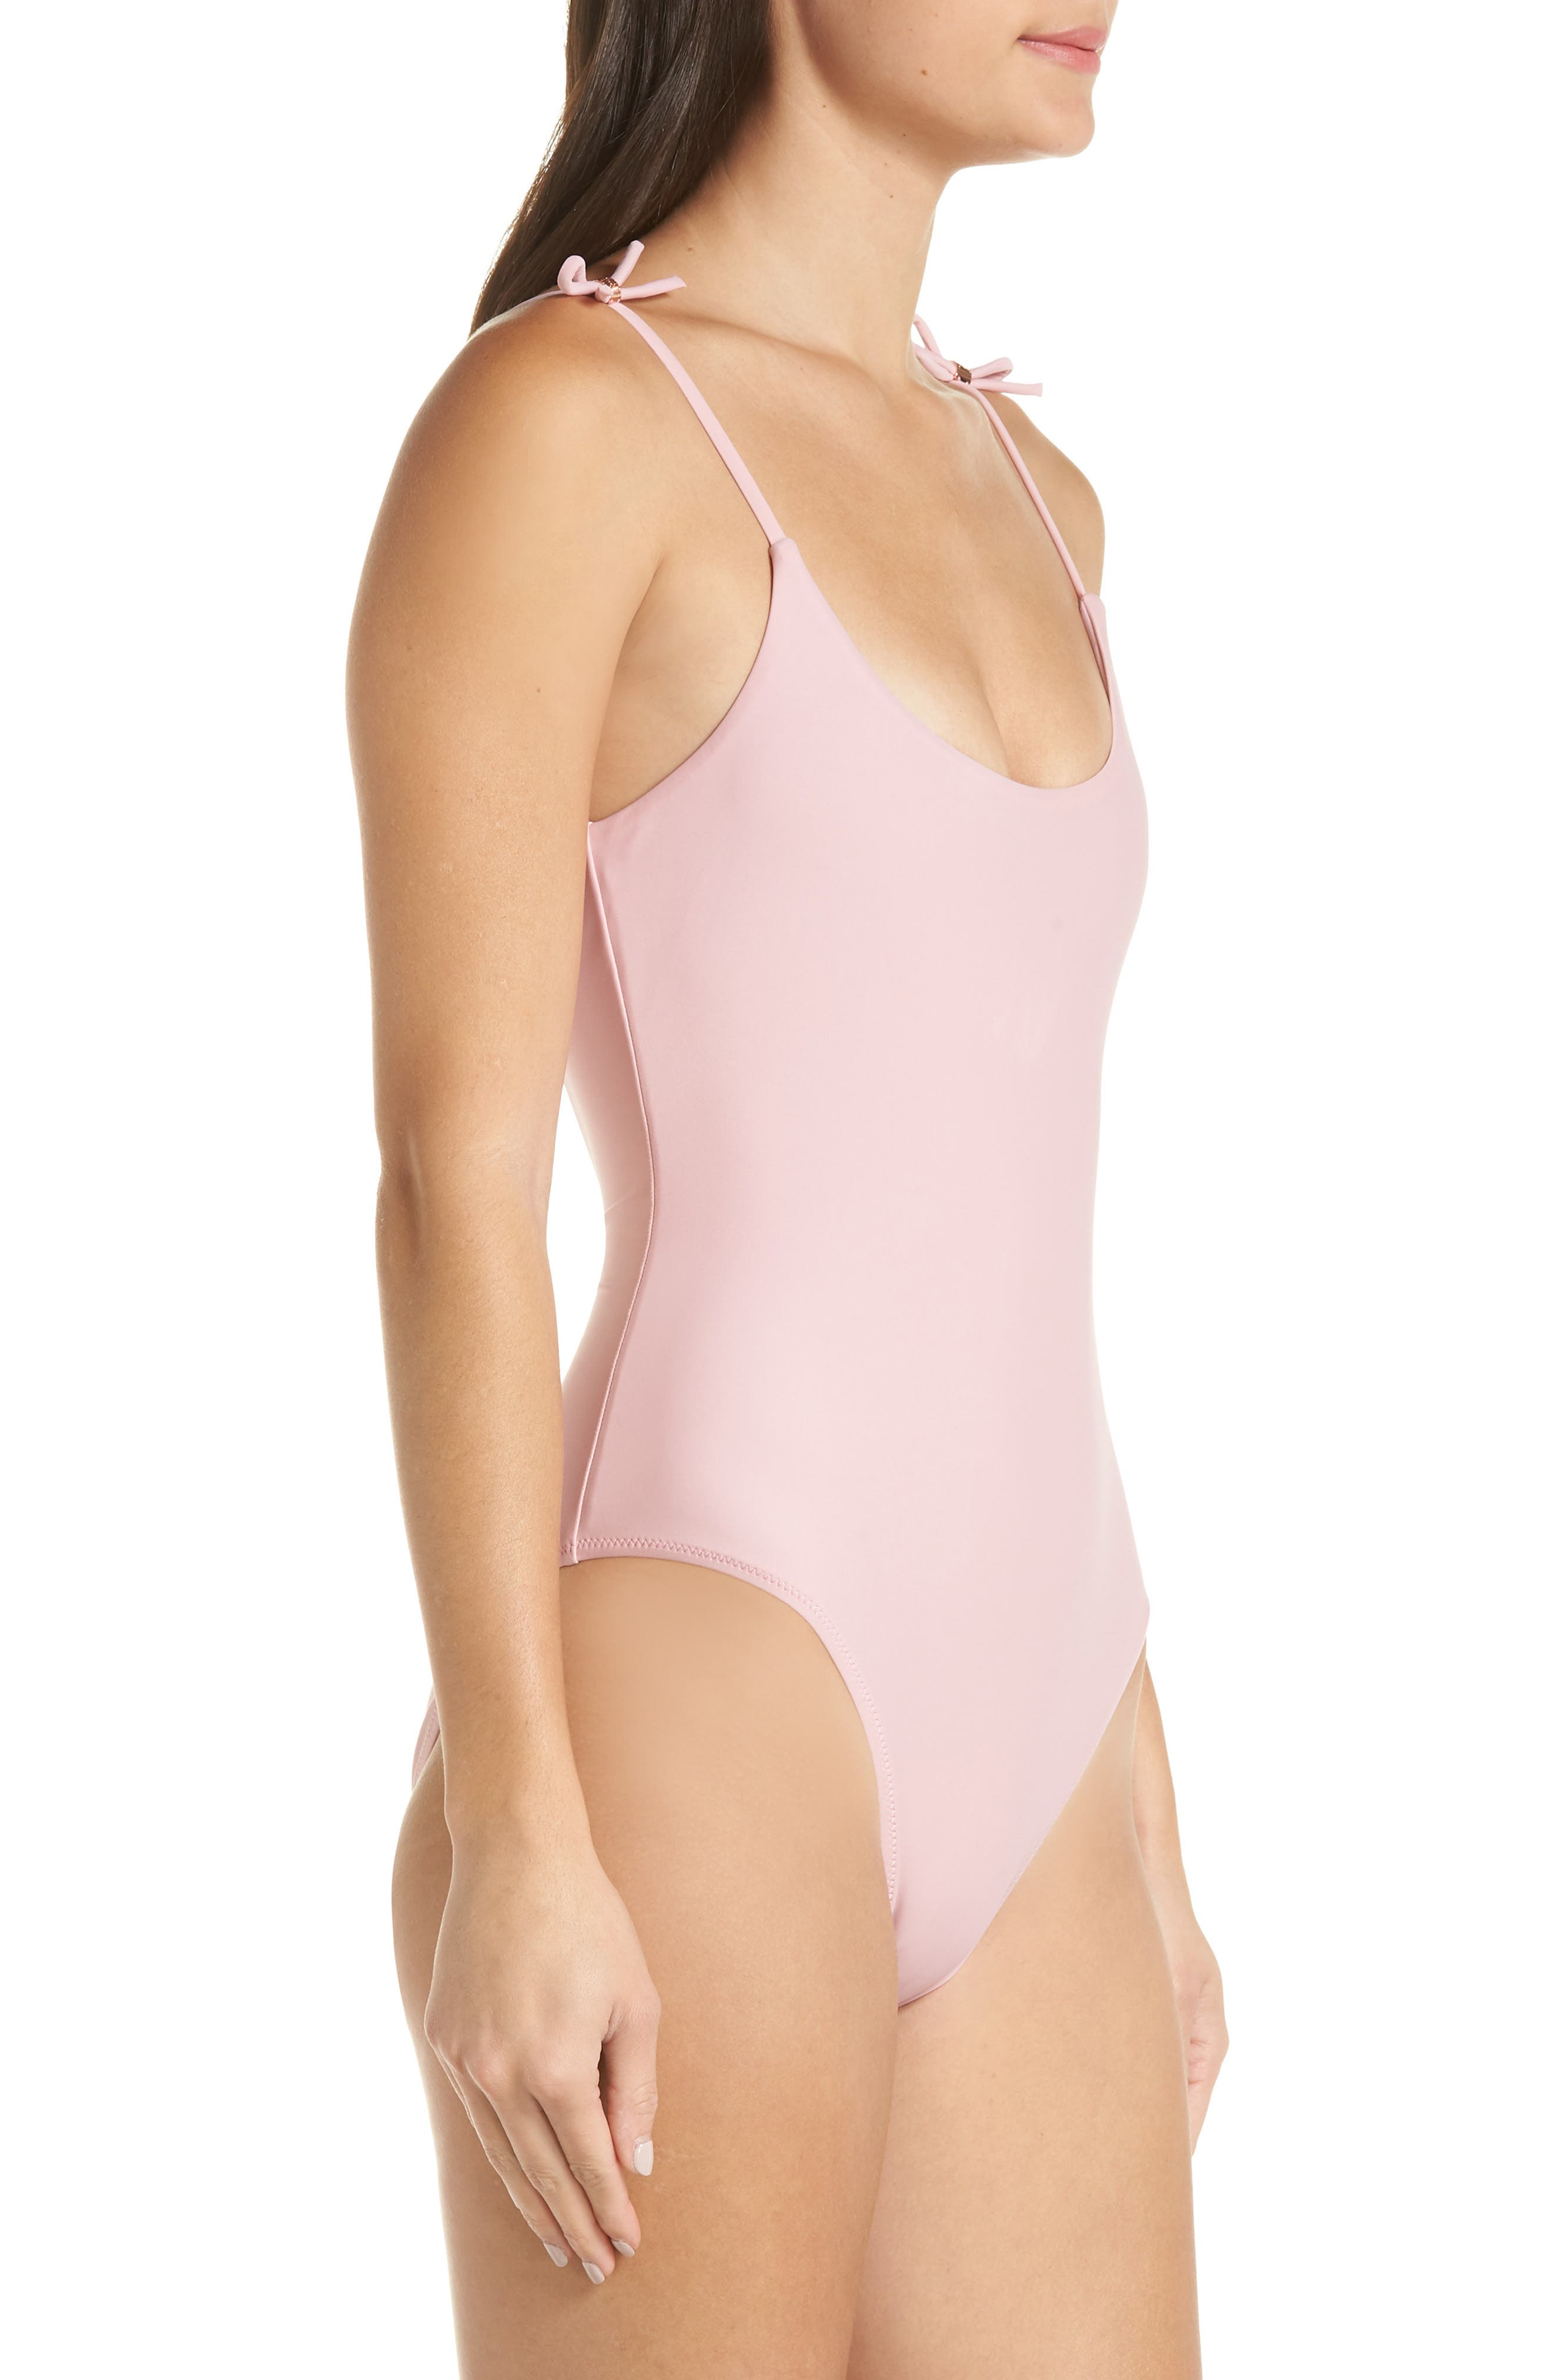 Ottino Velvet One-Piece Swimsuit,                             Alternate thumbnail 3, color,                             PALE PINK